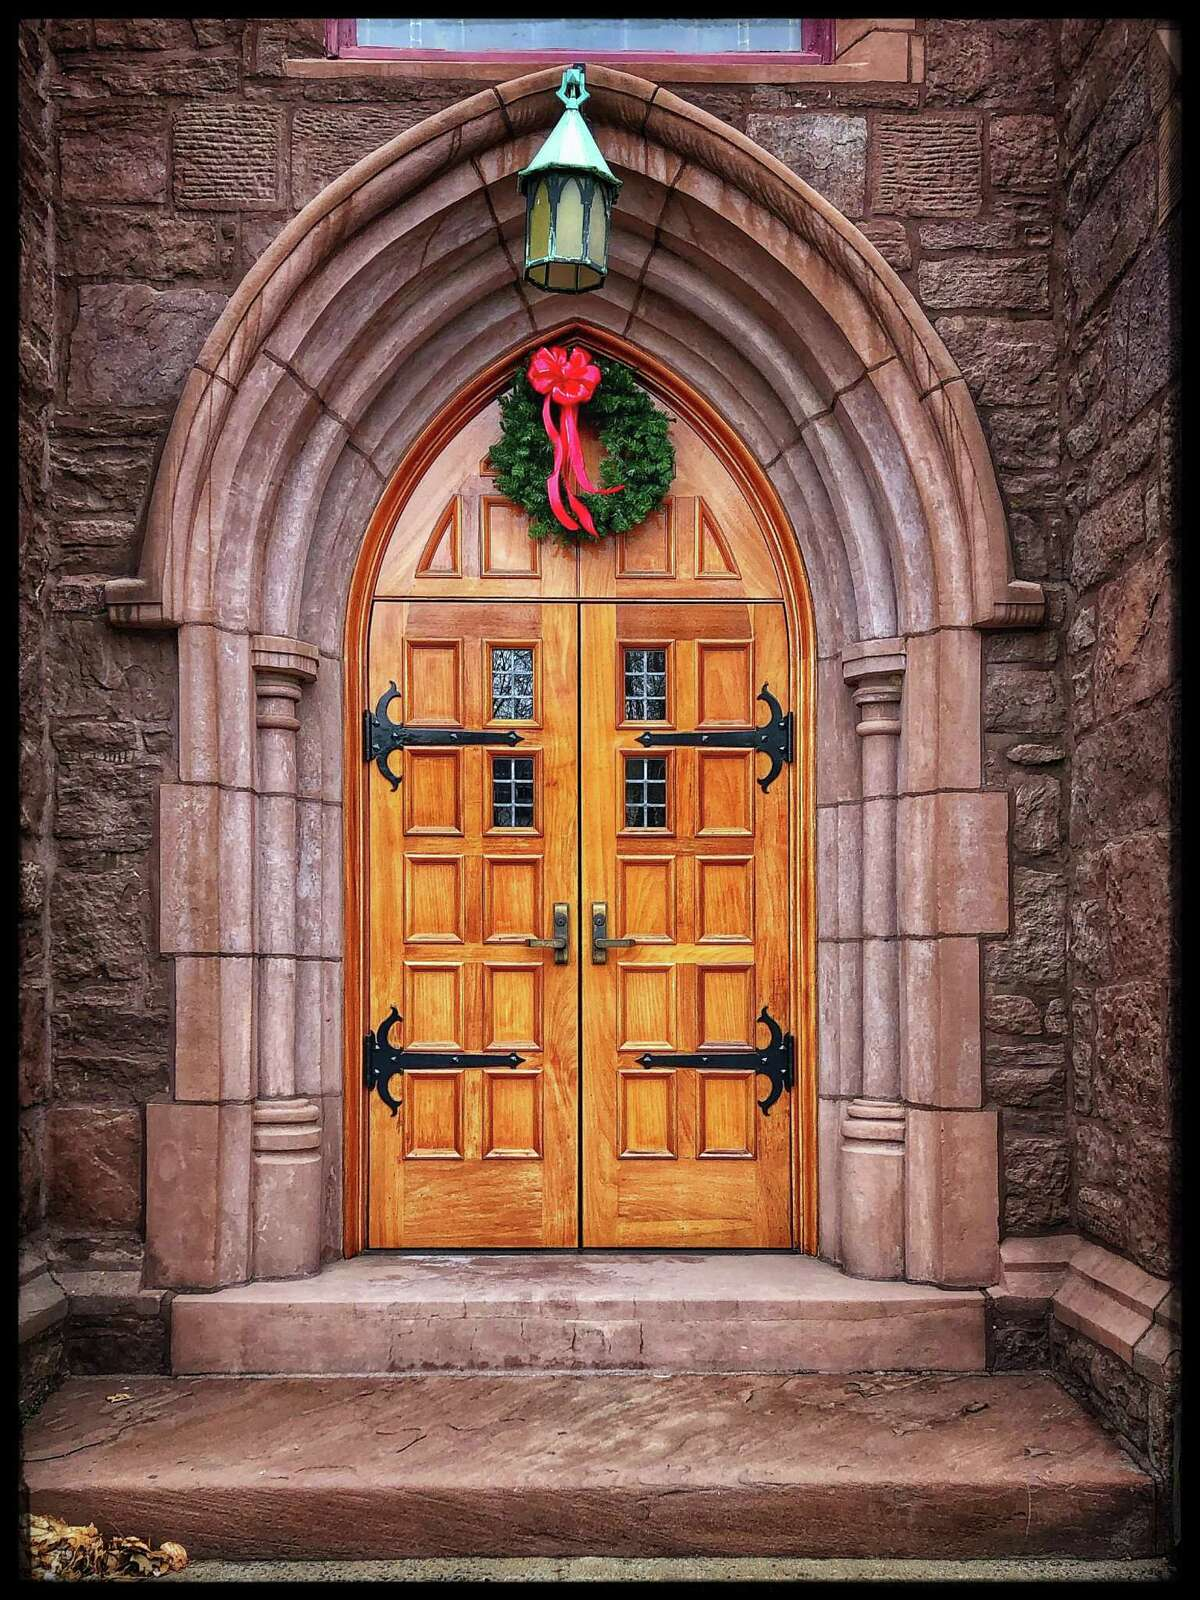 Retired Middletown police chief and photographer Lynn Baldoni began a project a month ago to take pictures of doors of buildings and homes throughout the city. Shown here is St. Johns Church on St. Johns Square.